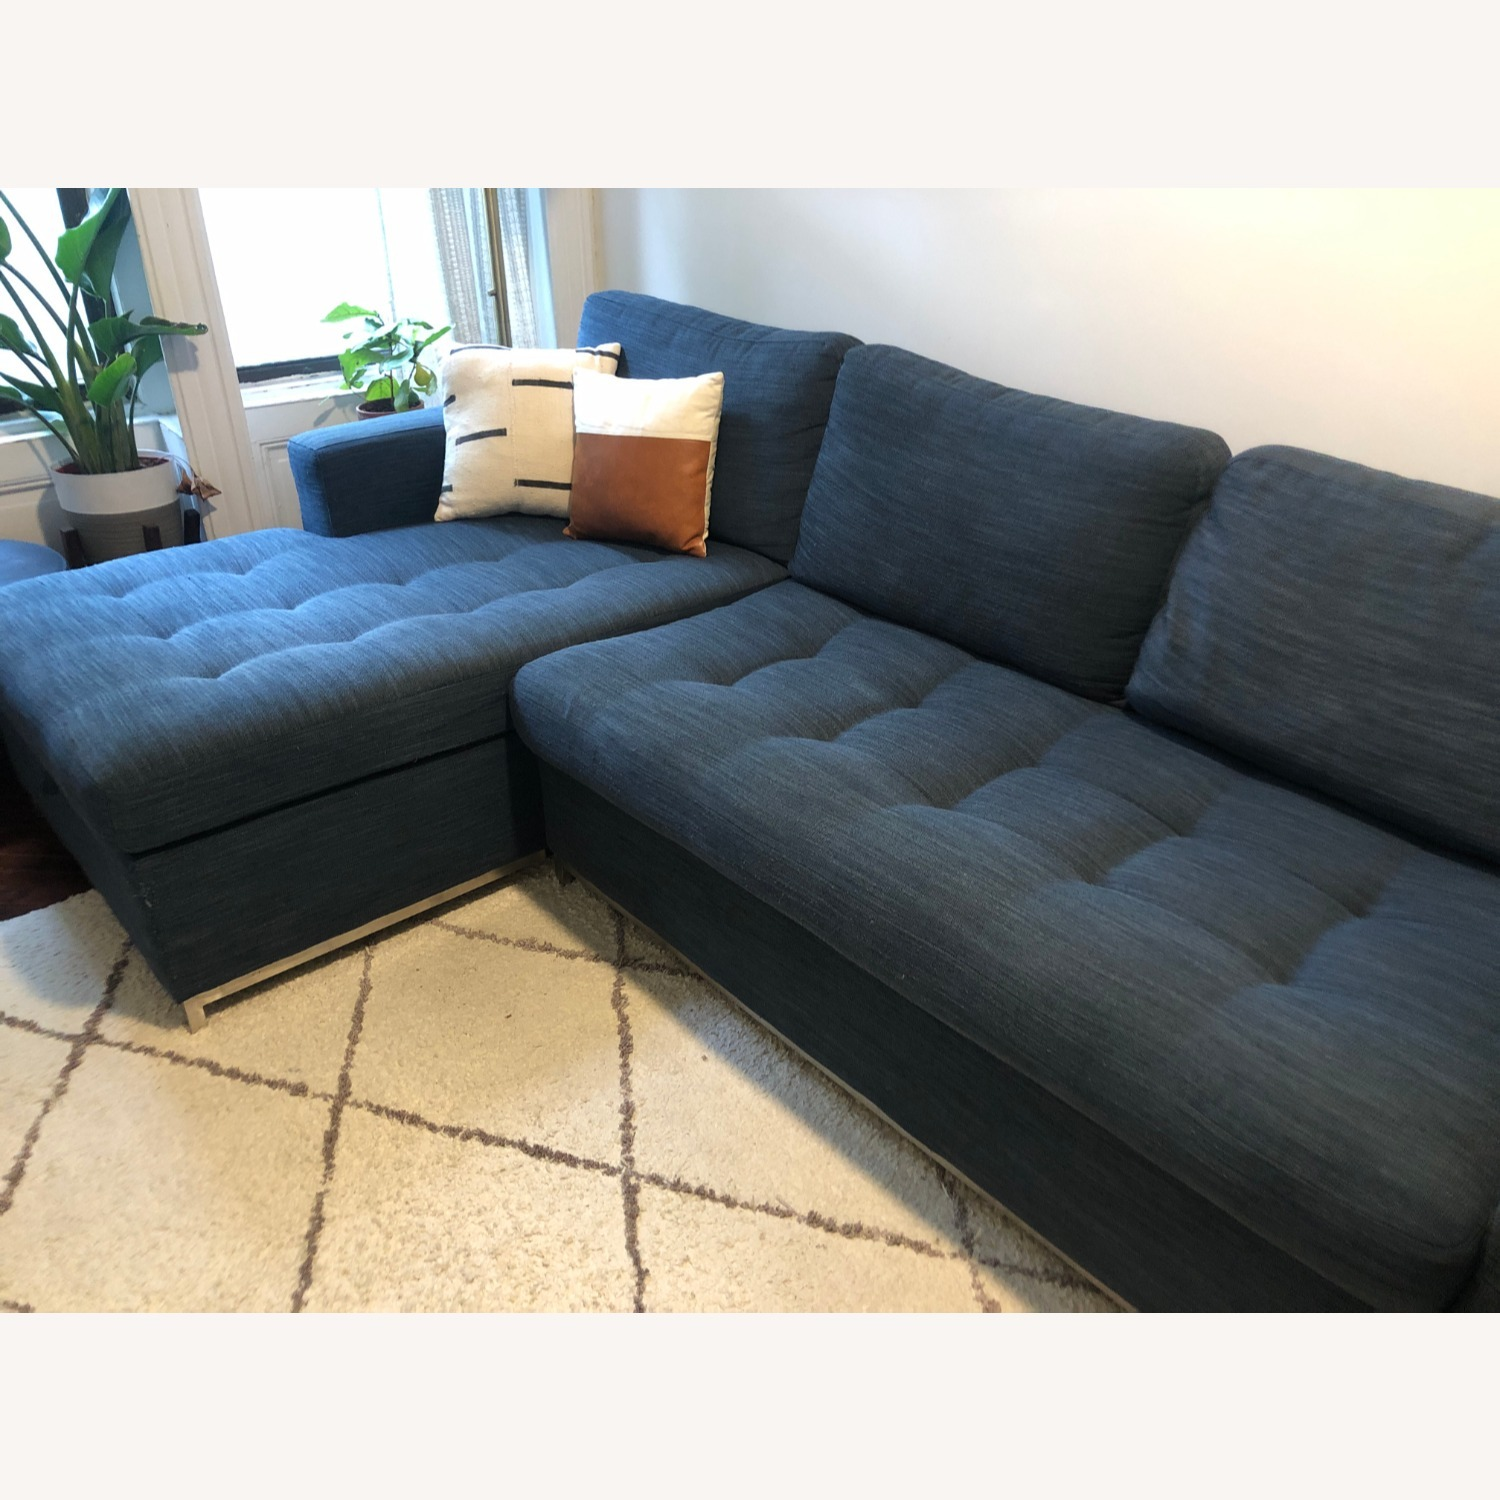 Article Soma Midnight Blue Sleeper Sectional Sofa - image-2